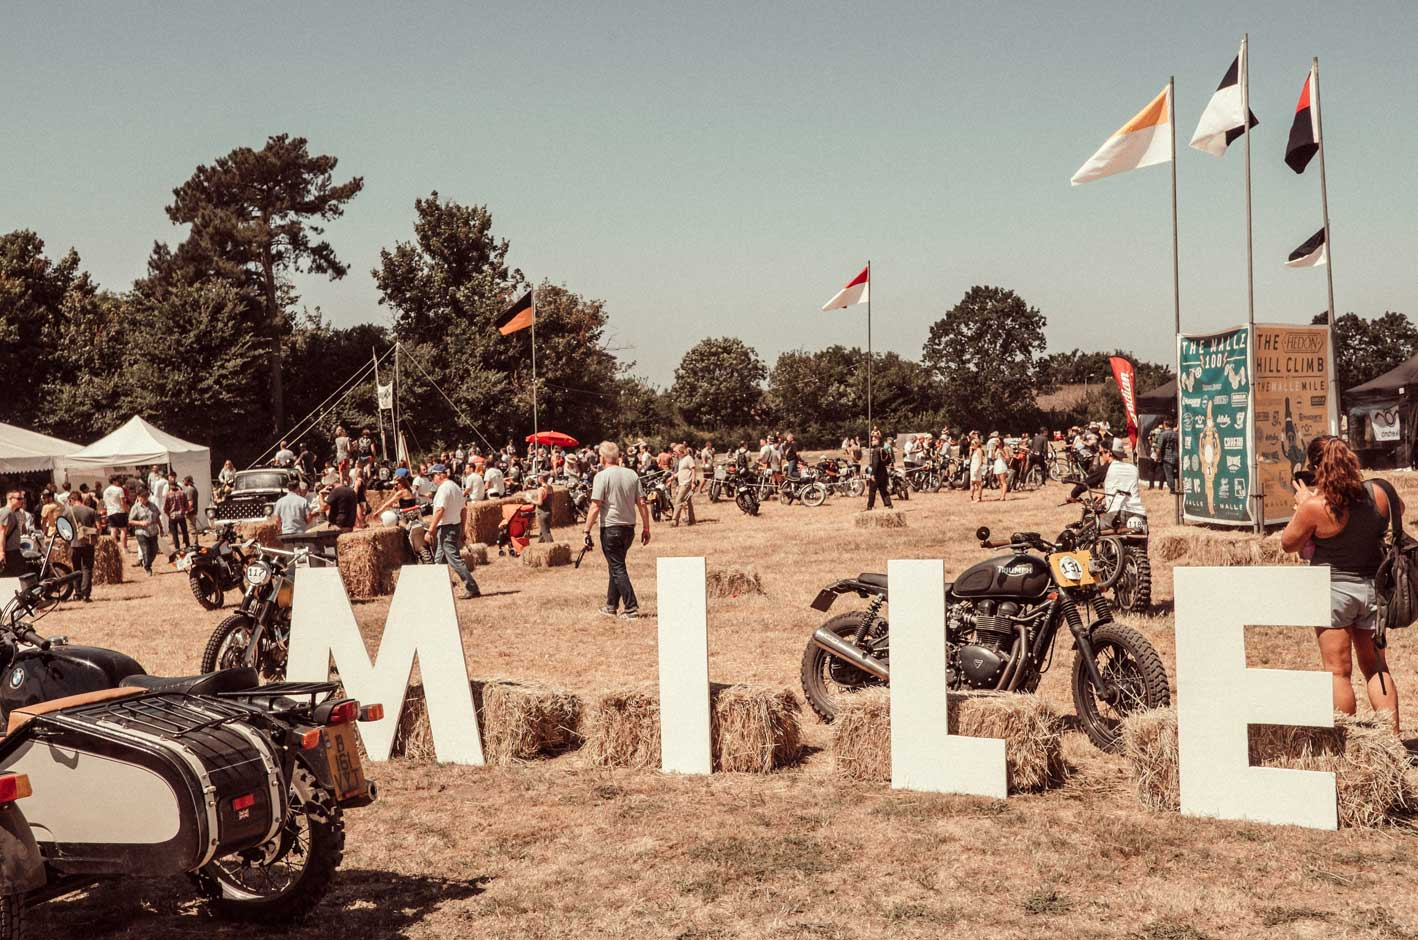 Provision & Co (P&Co) - The Malle Mile